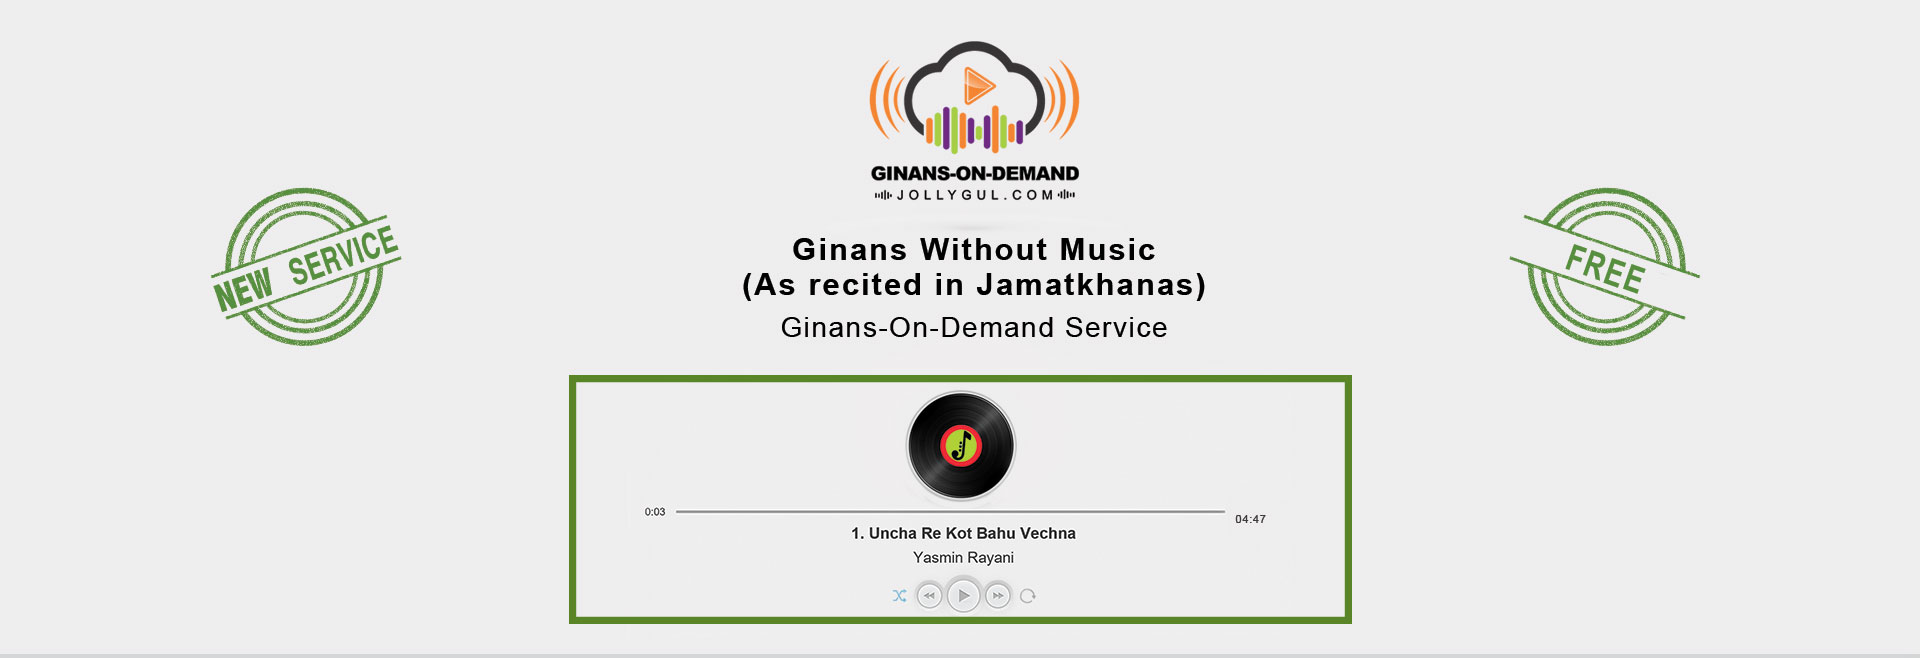 Ginans On Demand Launch